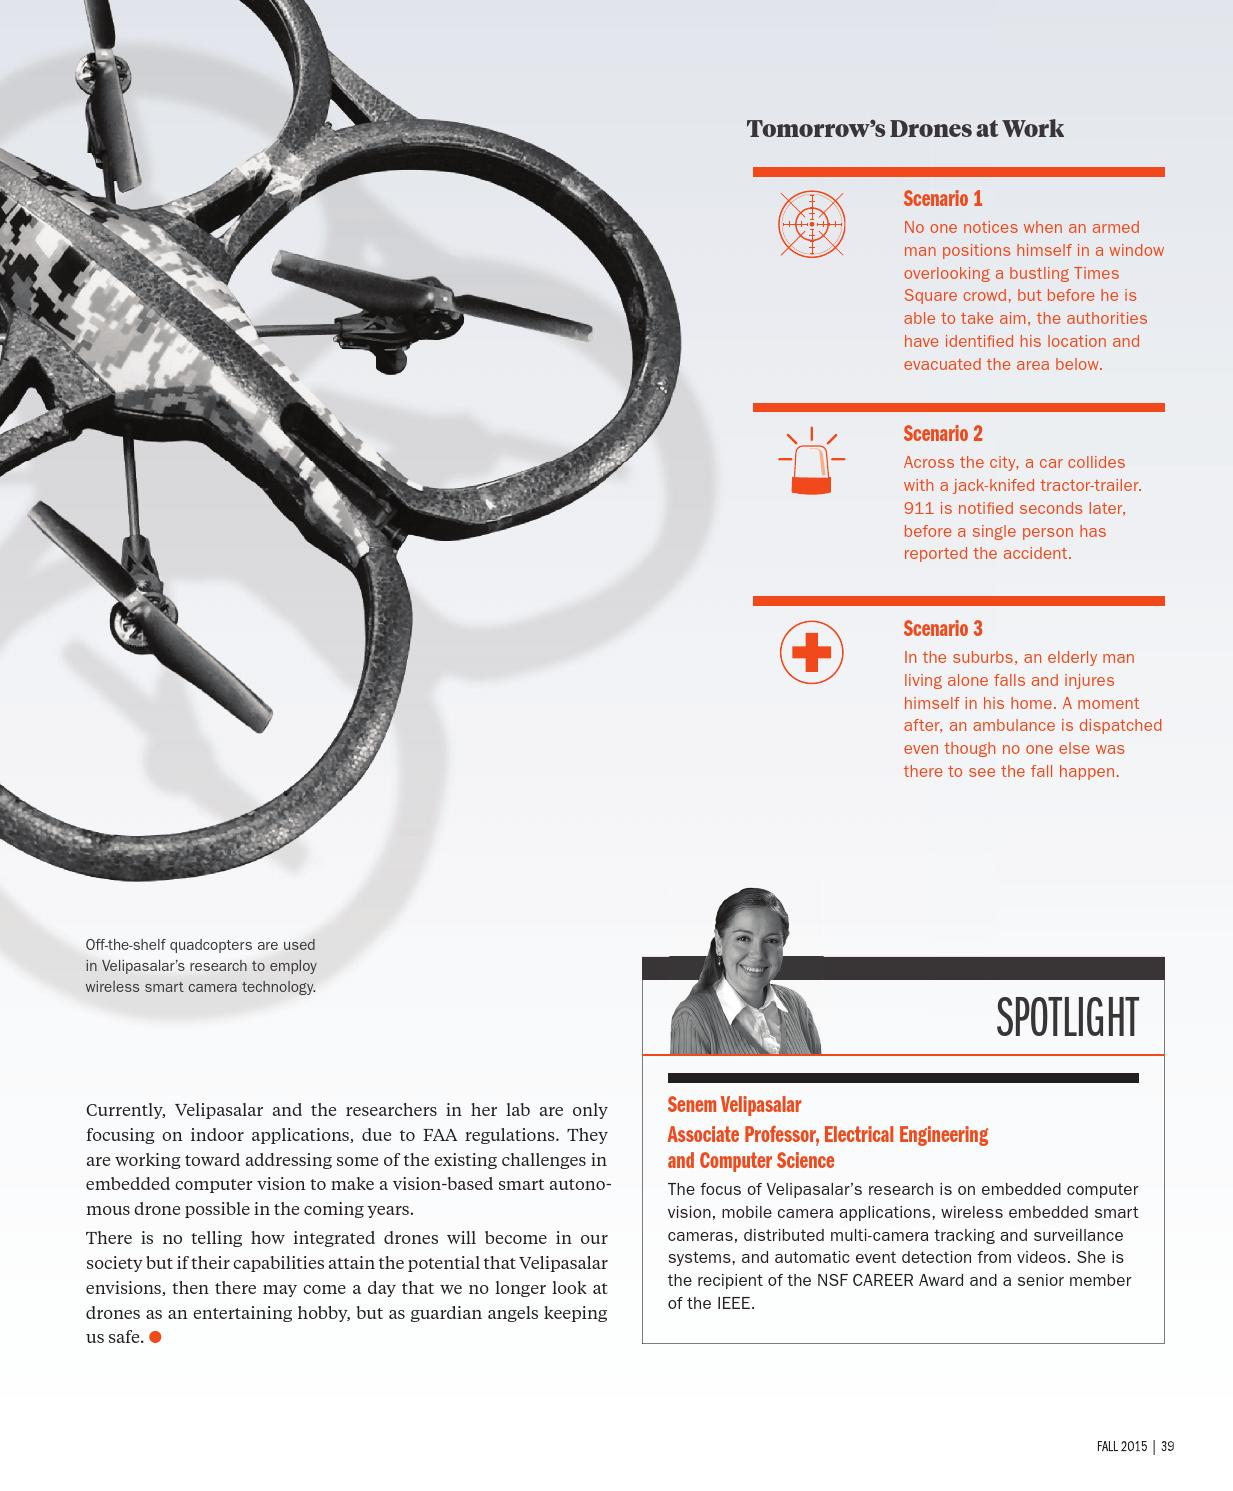 Syracuse Engineer - Fall 2015 by LeibowitzDesign - issuu